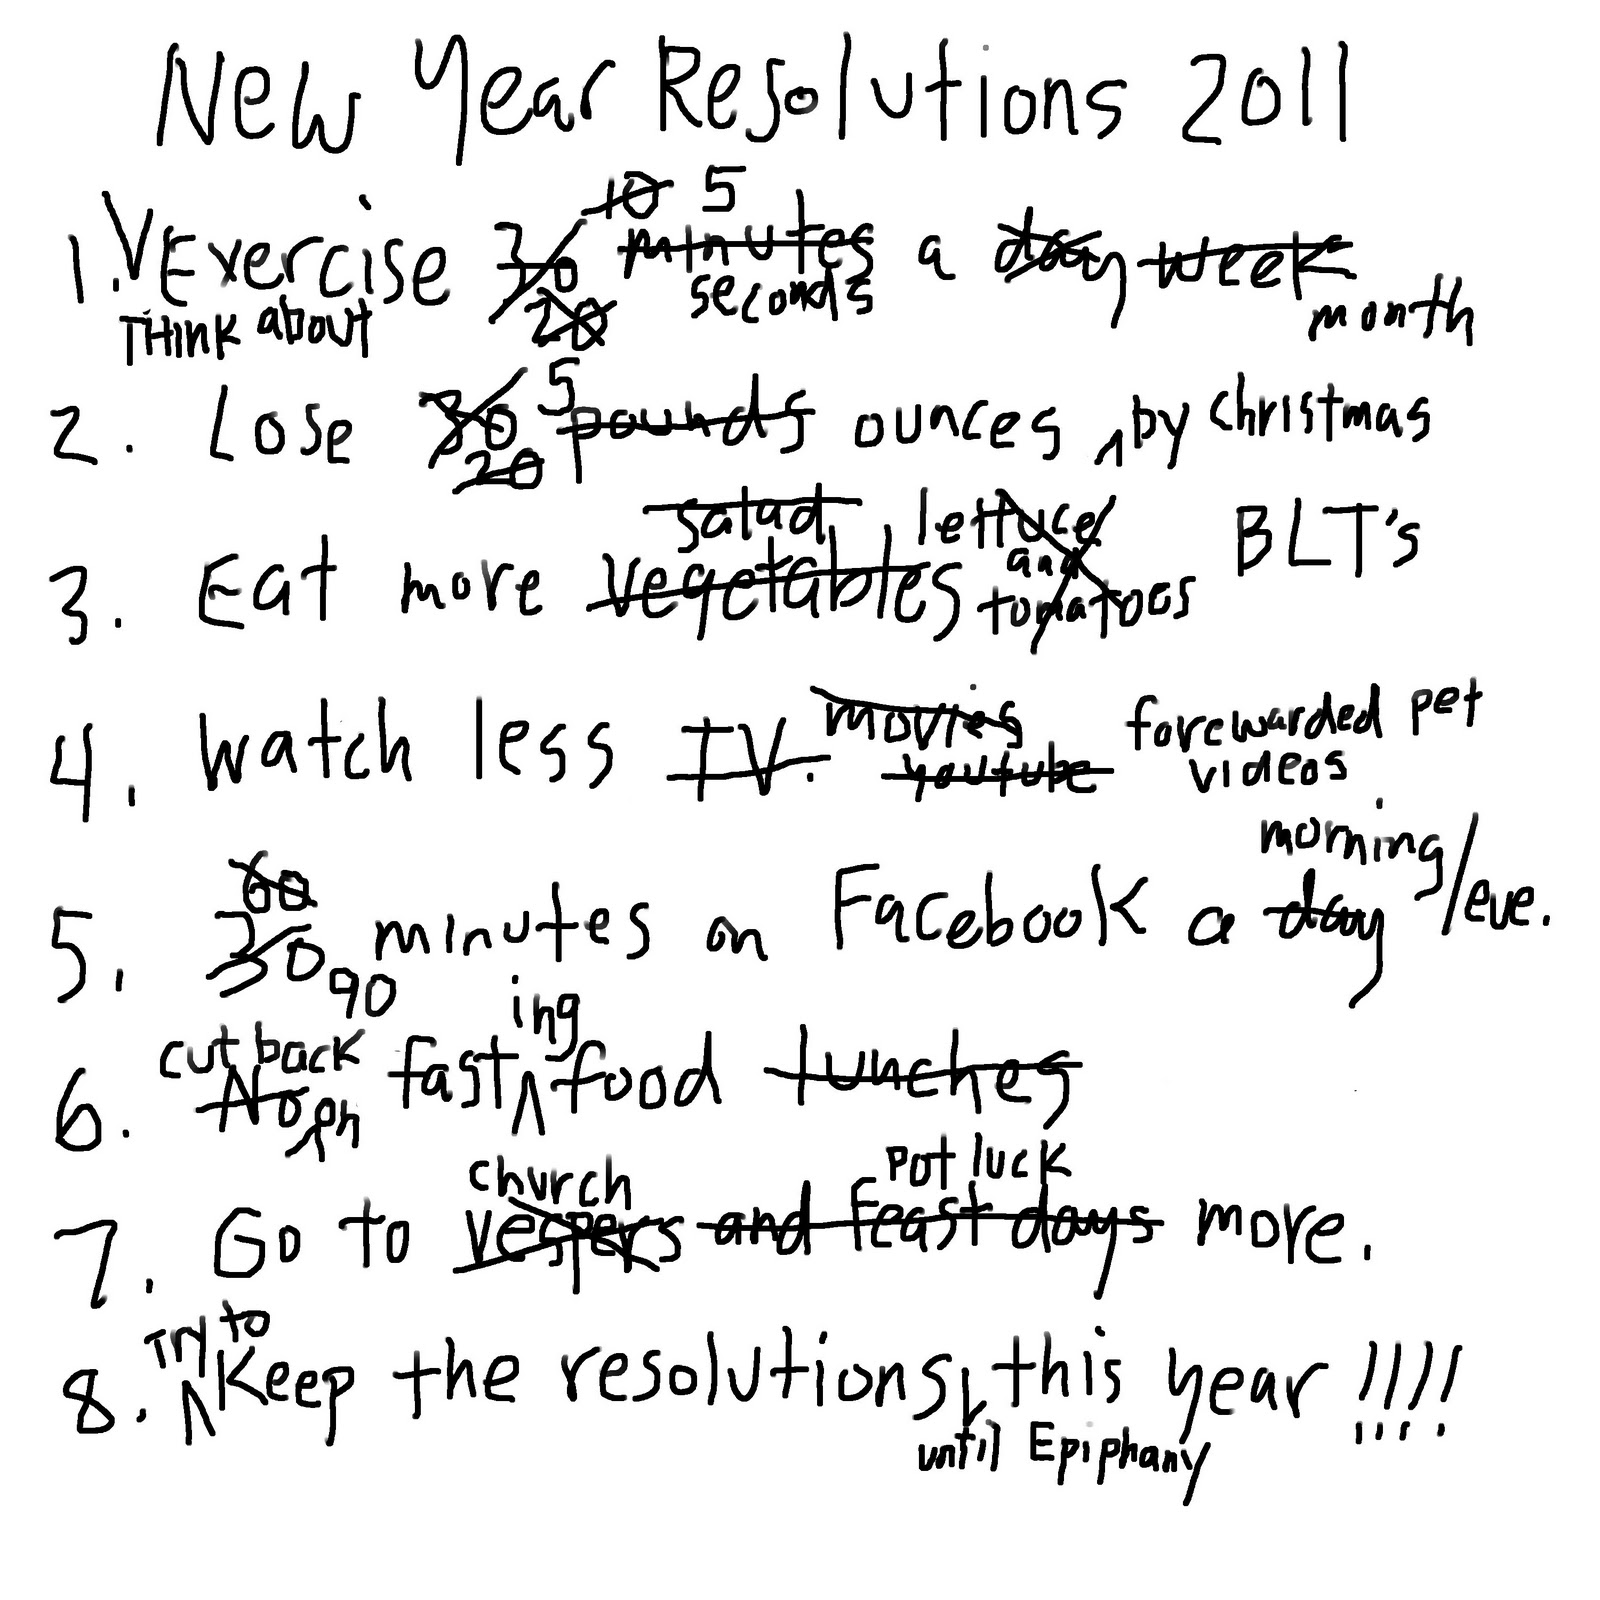 new year resolution funny 2014 quotes quotesgram